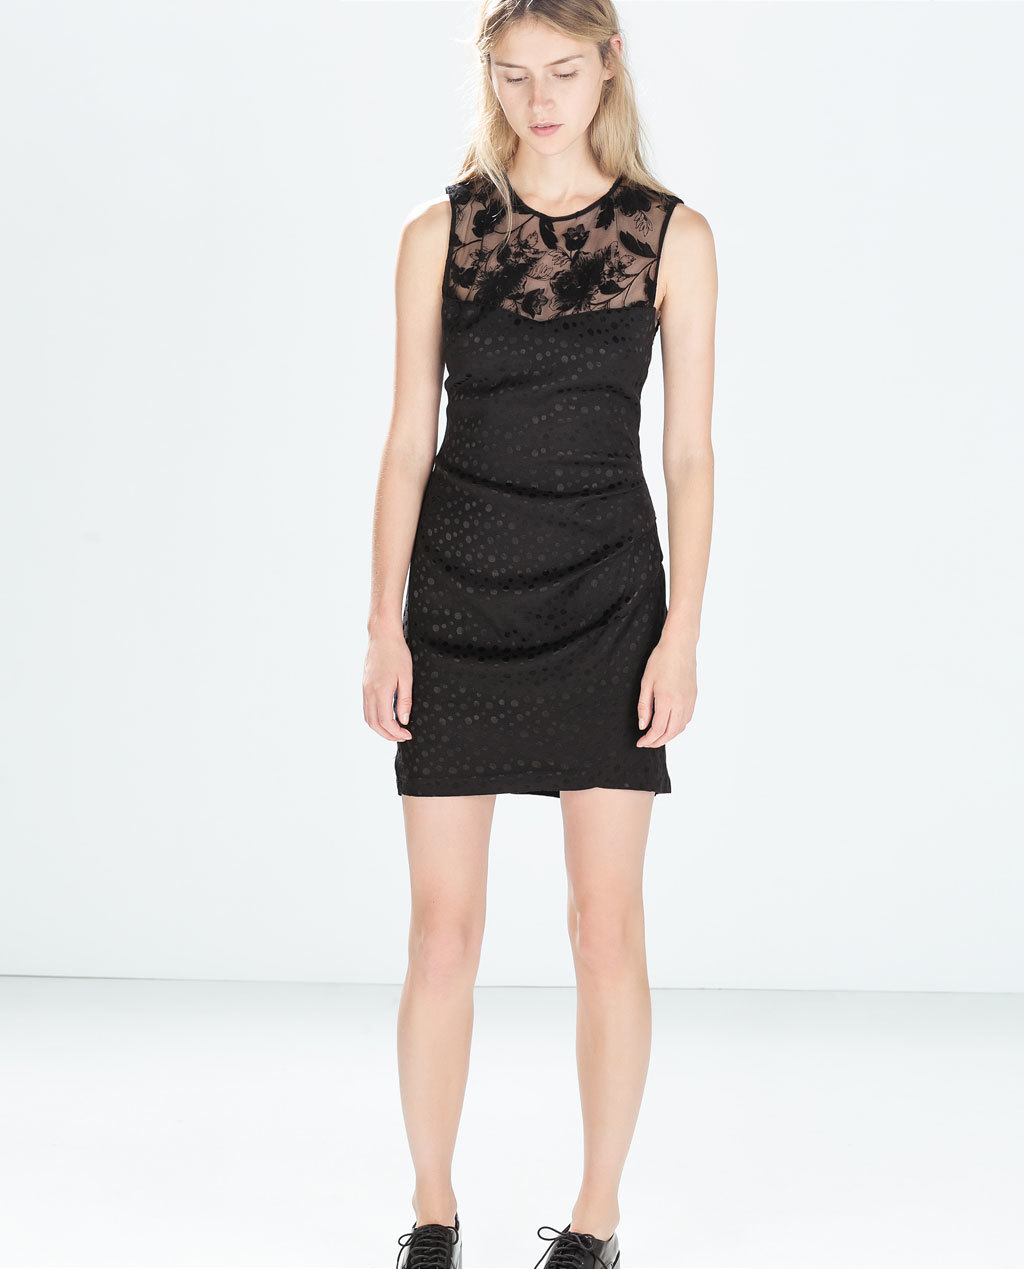 Combined Dress - style: shift; length: mid thigh; neckline: round neck; fit: tailored/fitted; pattern: plain; sleeve style: sleeveless; predominant colour: black; occasions: evening, occasion; sleeve length: sleeveless; texture group: jersey - stretchy/drapey; fibres: viscose/rayon - mix; embellishment: lace; season: a/w 2014; shoulder detail: sheer at shoulder